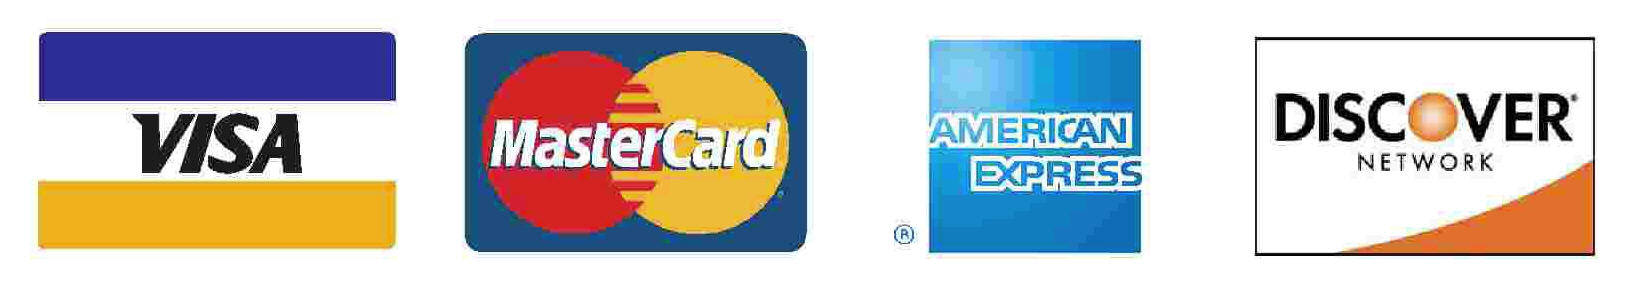 9 Discover Credit Card Logo Vector Images - Credit Card ...